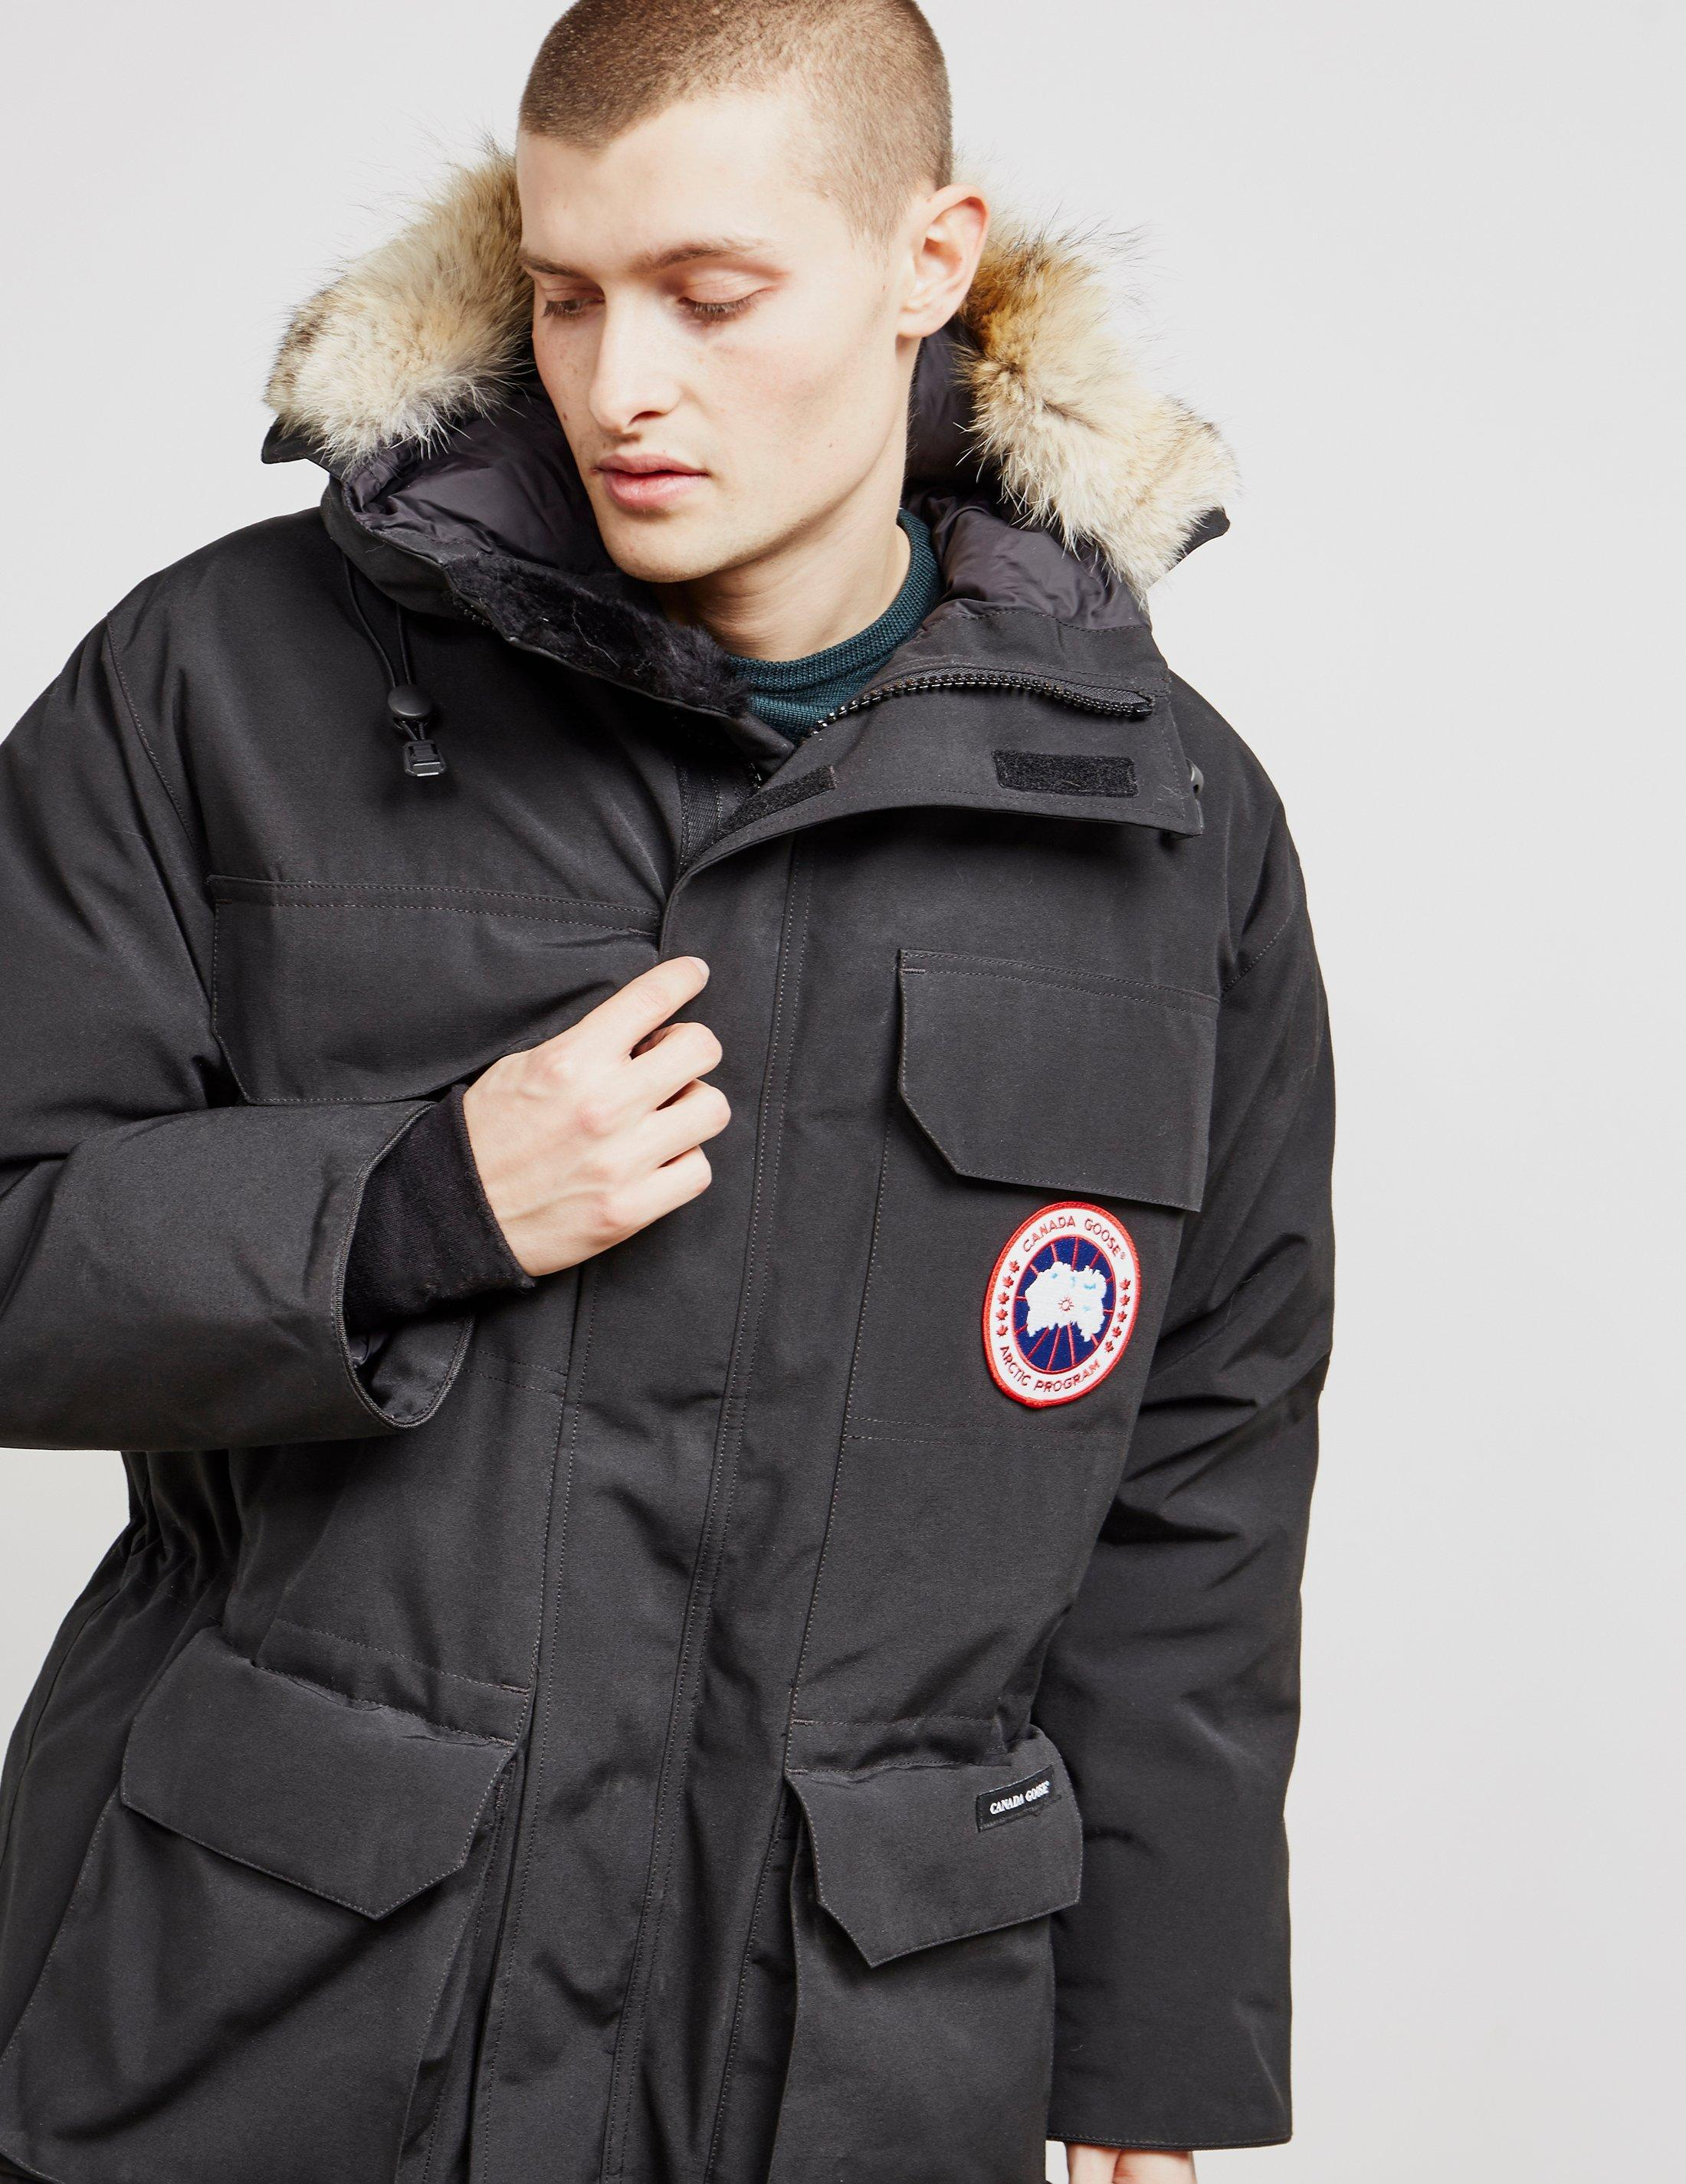 43368334e55 Tap to visit site. Canada Goose - Expedition Padded Parka Jacket Black for  Men - Lyst